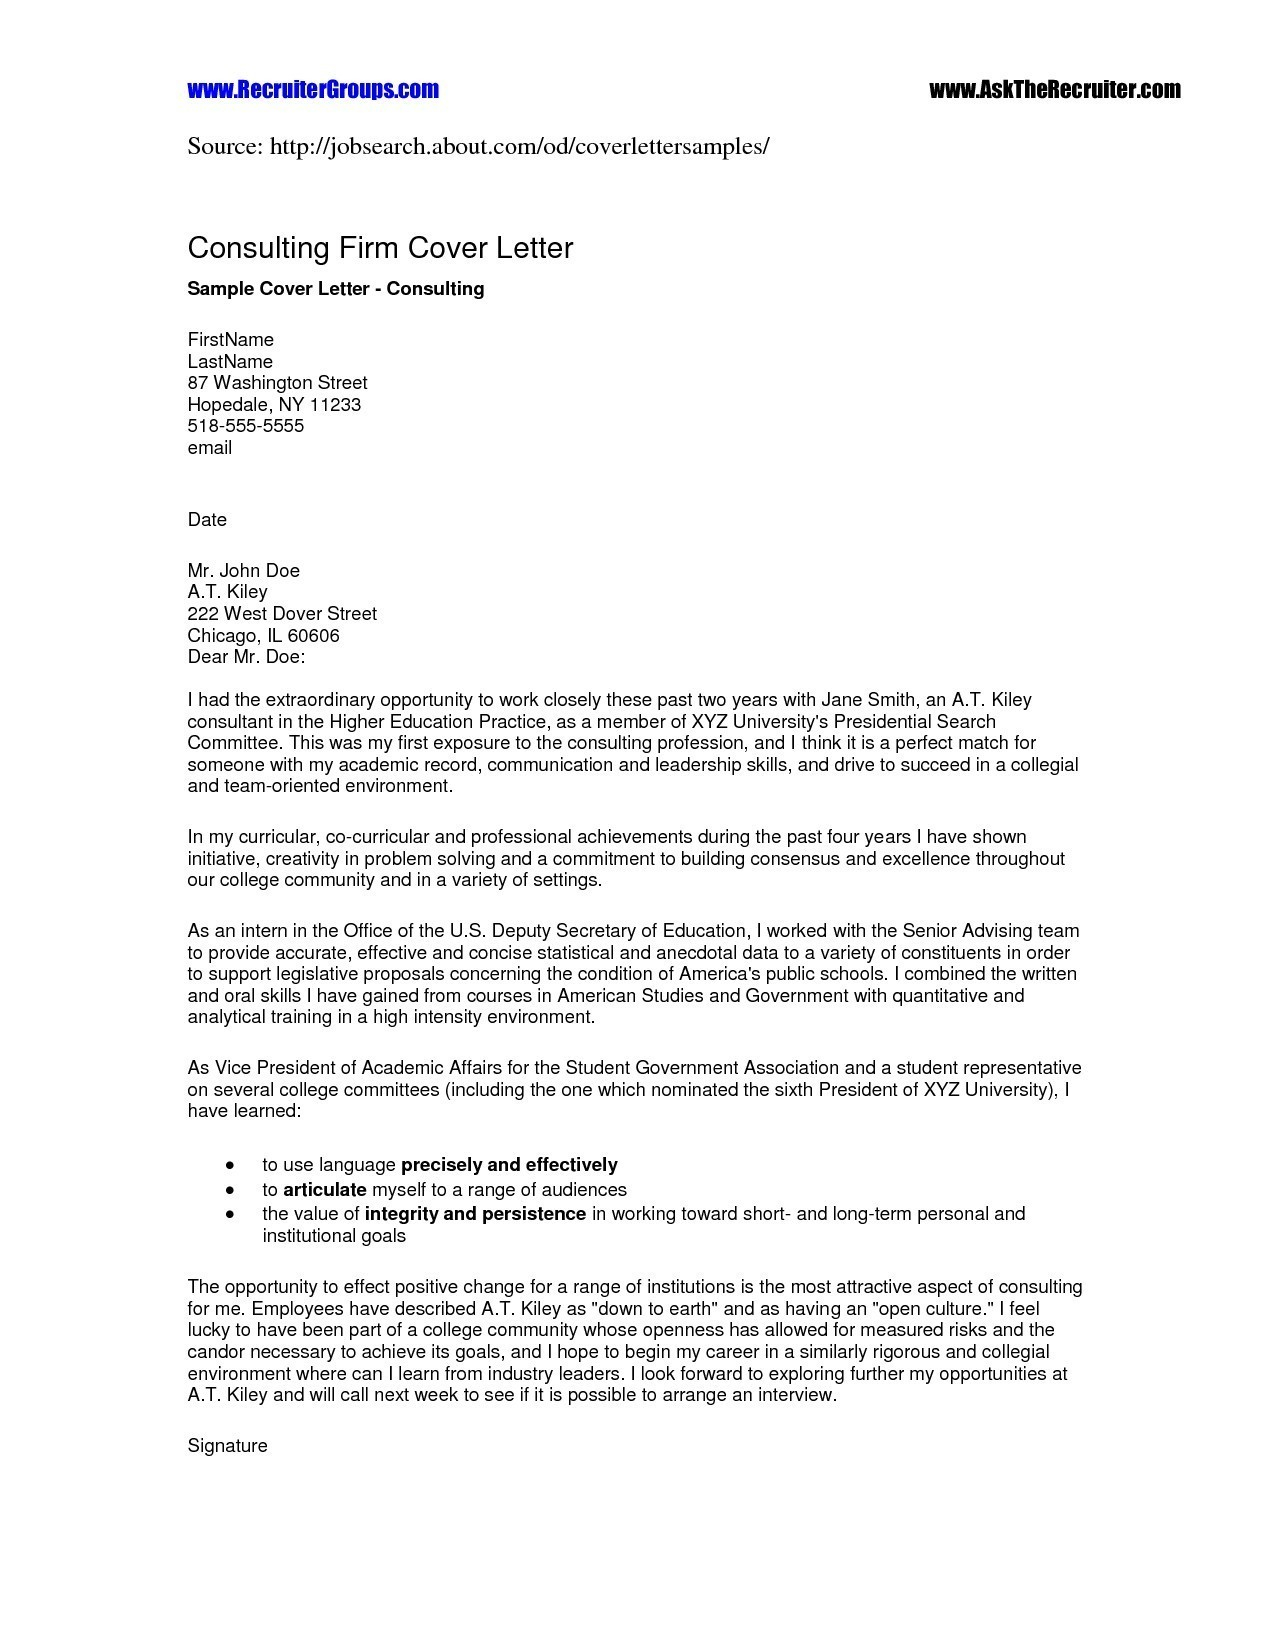 Personal Cover Letter Template - Job Application Letter format Template Copy Cover Letter Template Hr